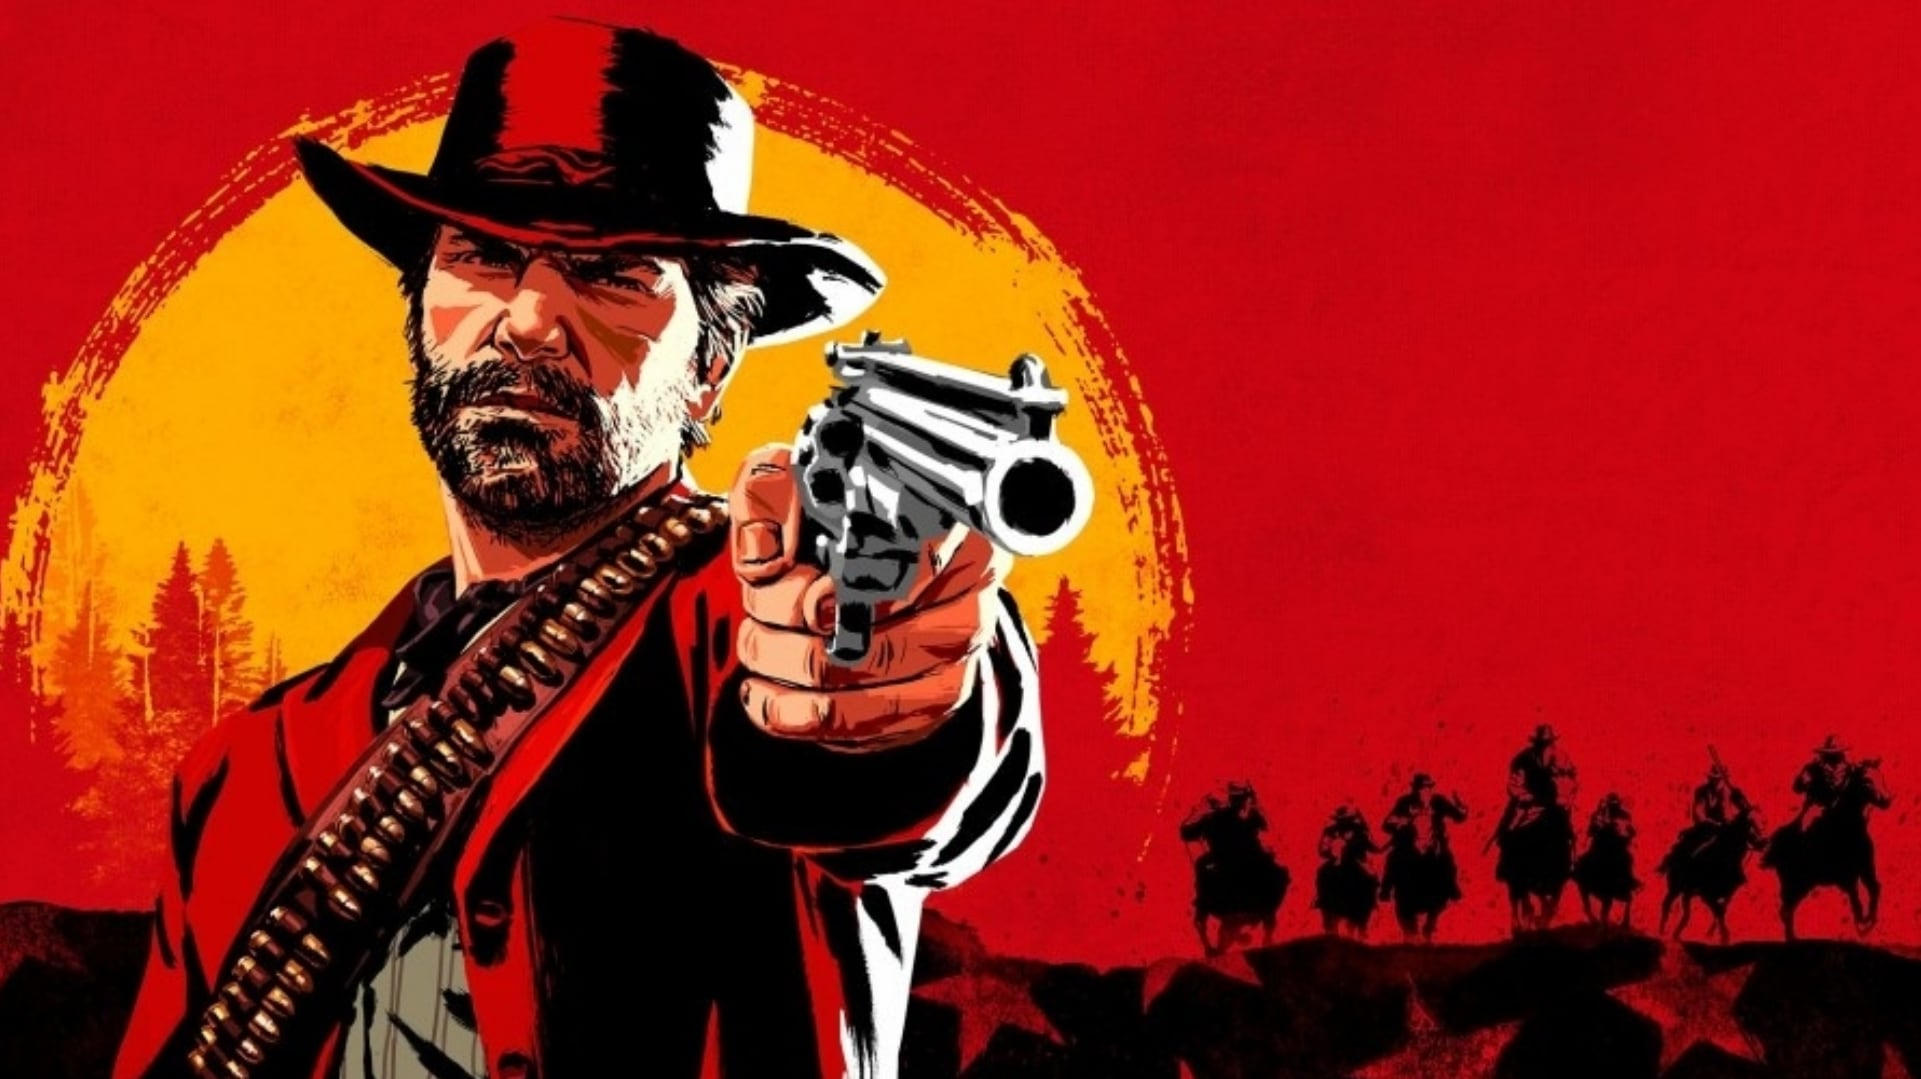 Red Dead Redemption 2: The symbology, morality and philosophy of Rockstar Games' latest